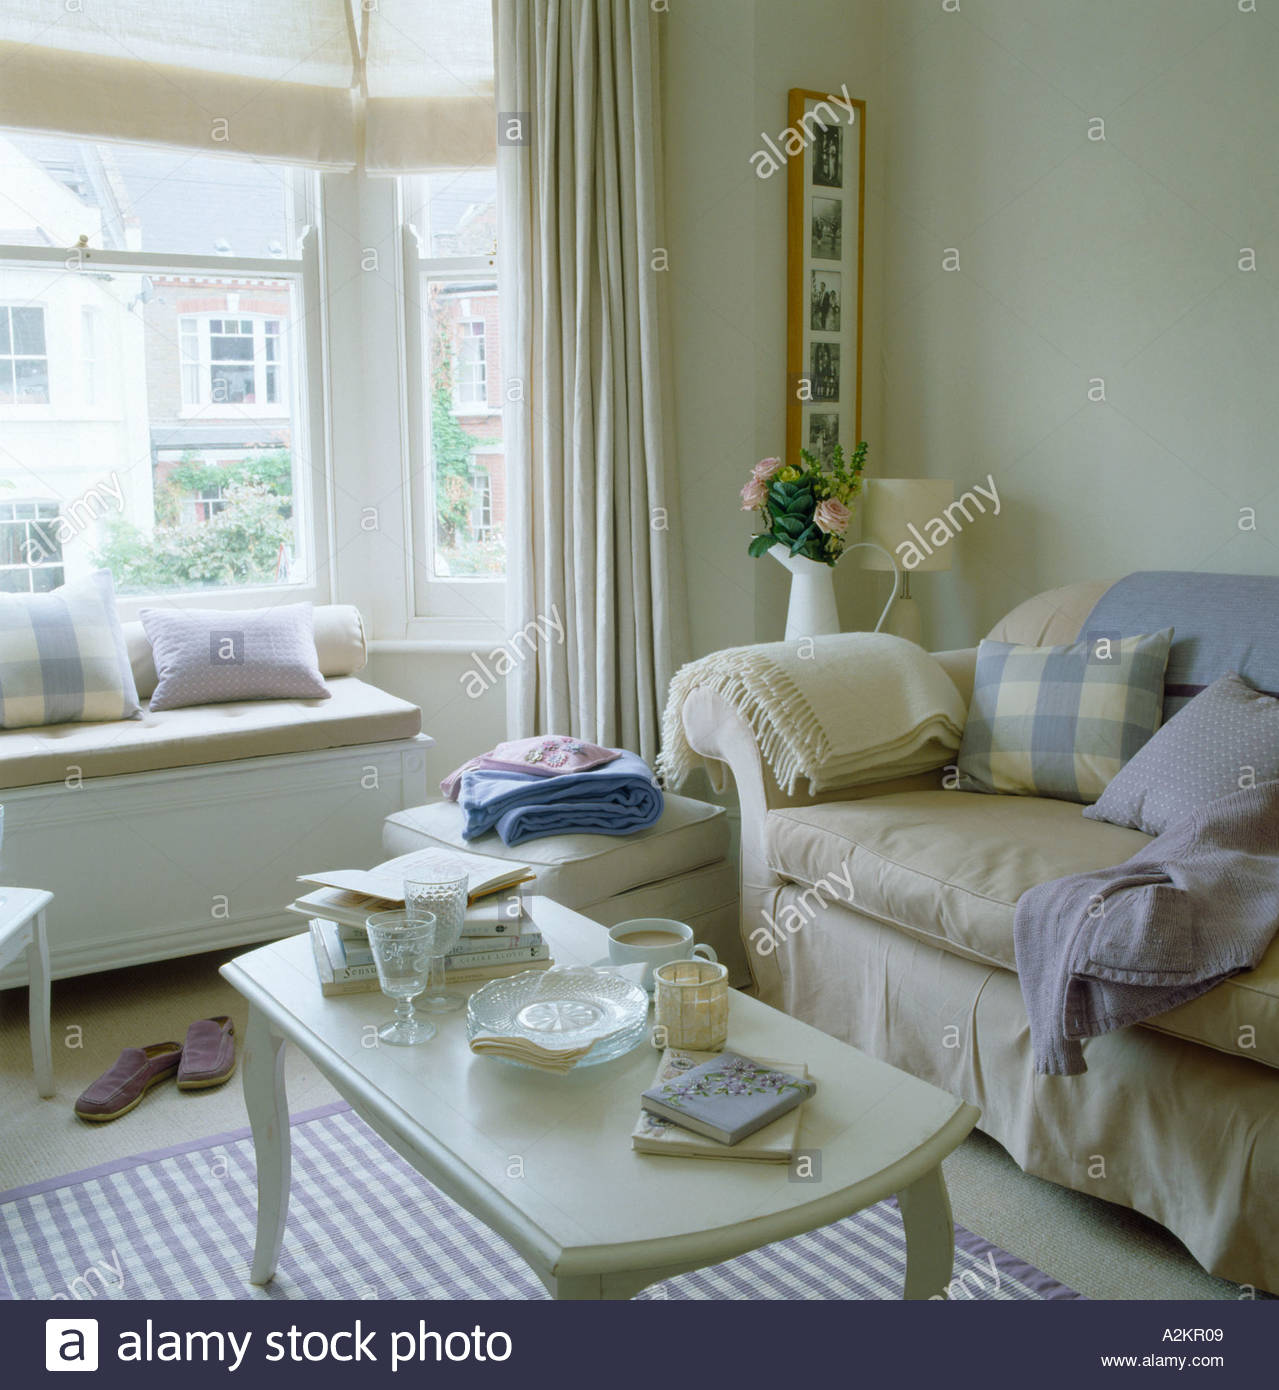 Living Room Decorated In Lilac Purple And Cream Colour Stock Photo Royalty Free Image 3443464